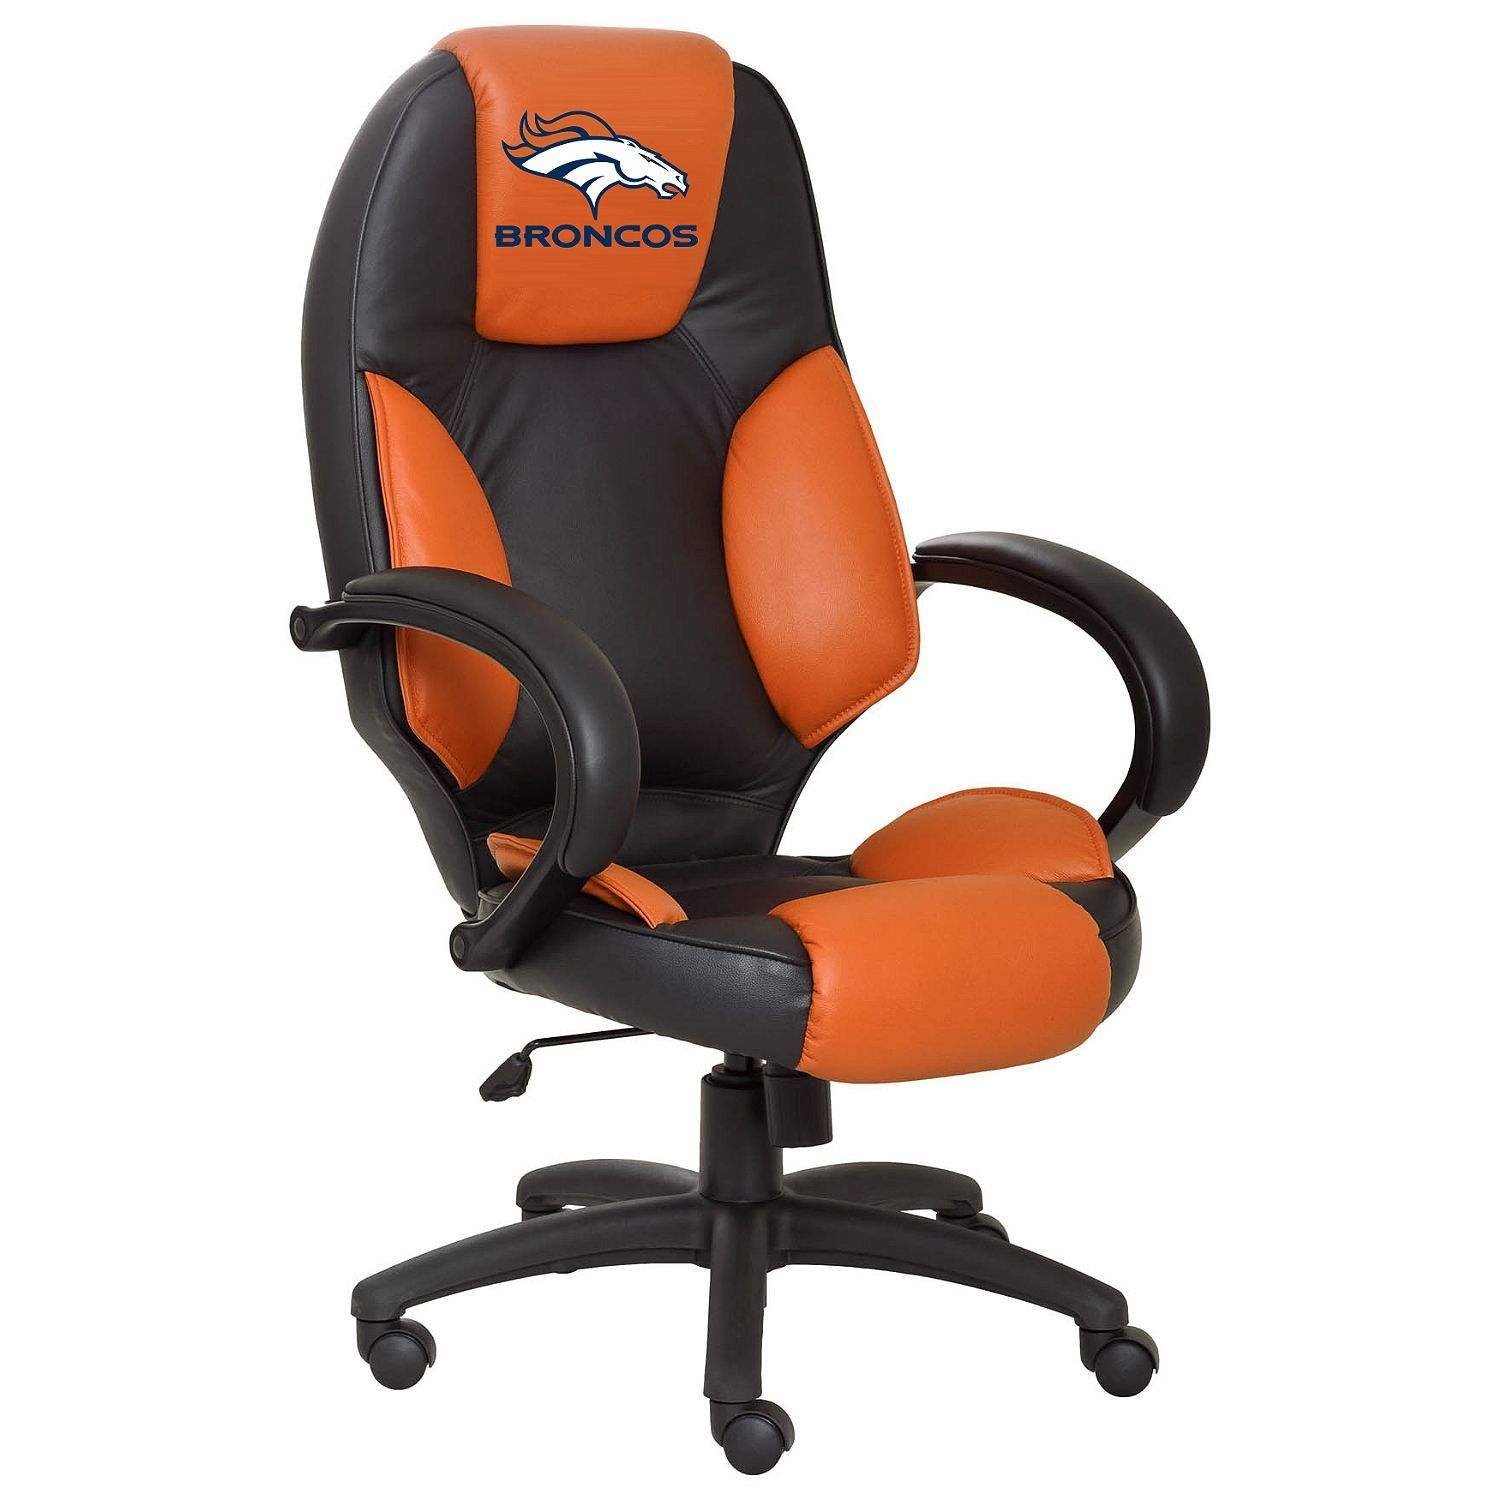 Denver Broncos Chair Denver Broncos Office Chair Sam 39s Club Football Game